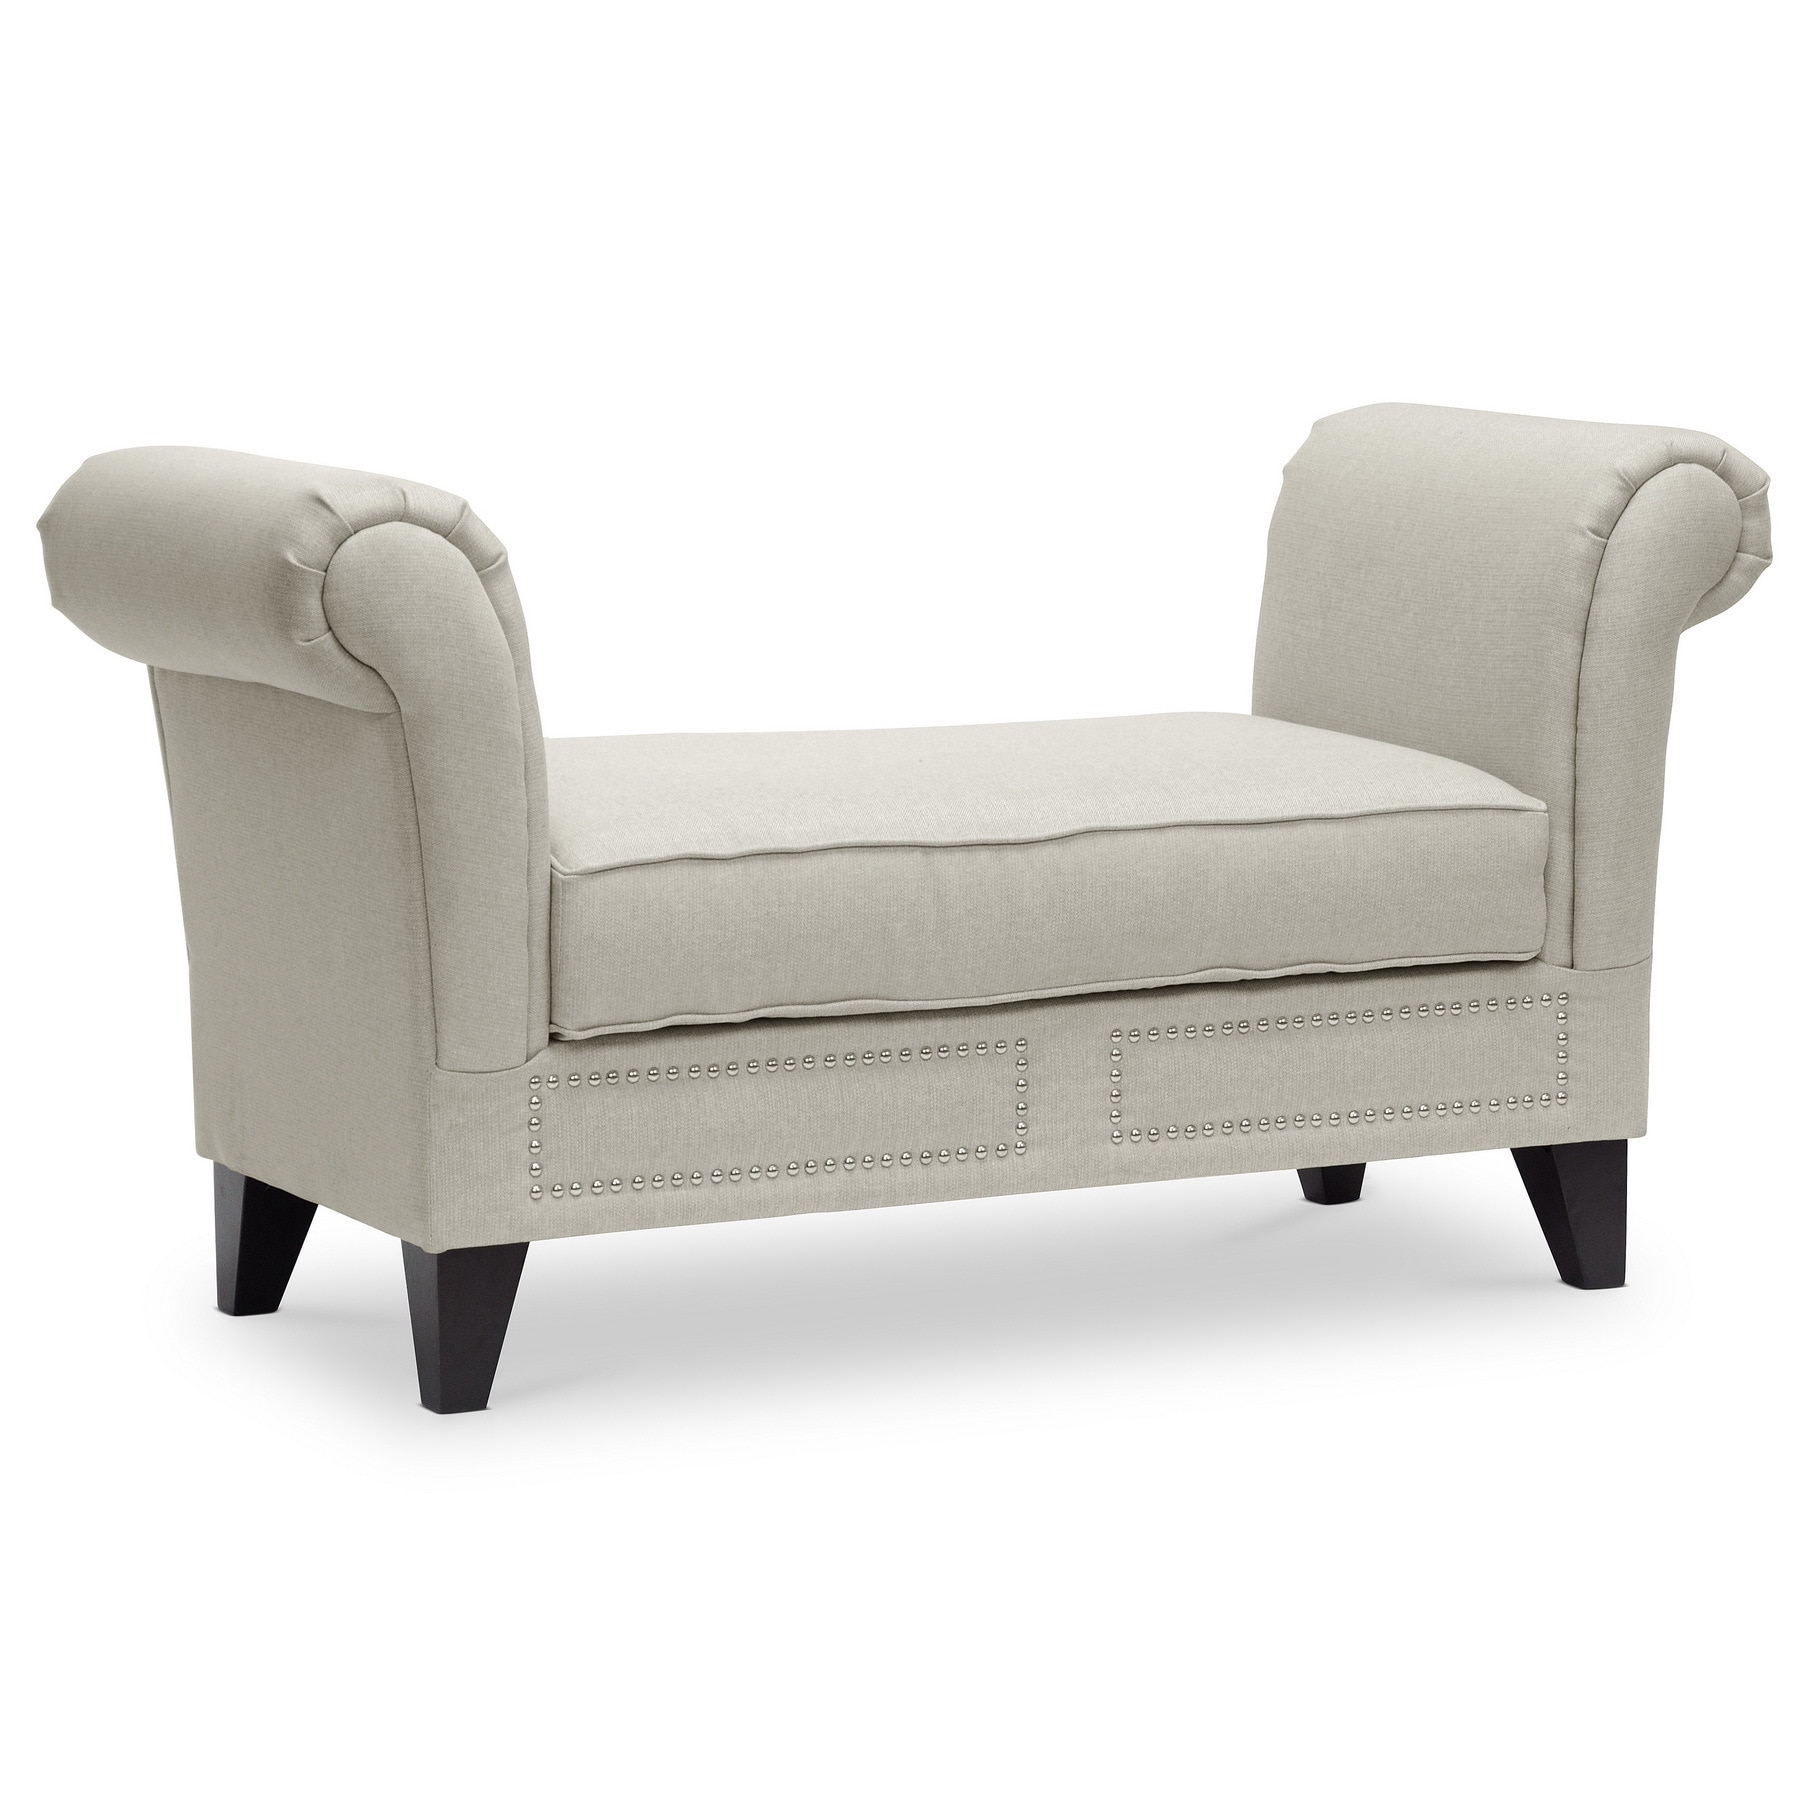 Shop Oliver U0026 James Diana Light Beige Scroll Arm Bench   Free Shipping  Today   Overstock.com   20543472